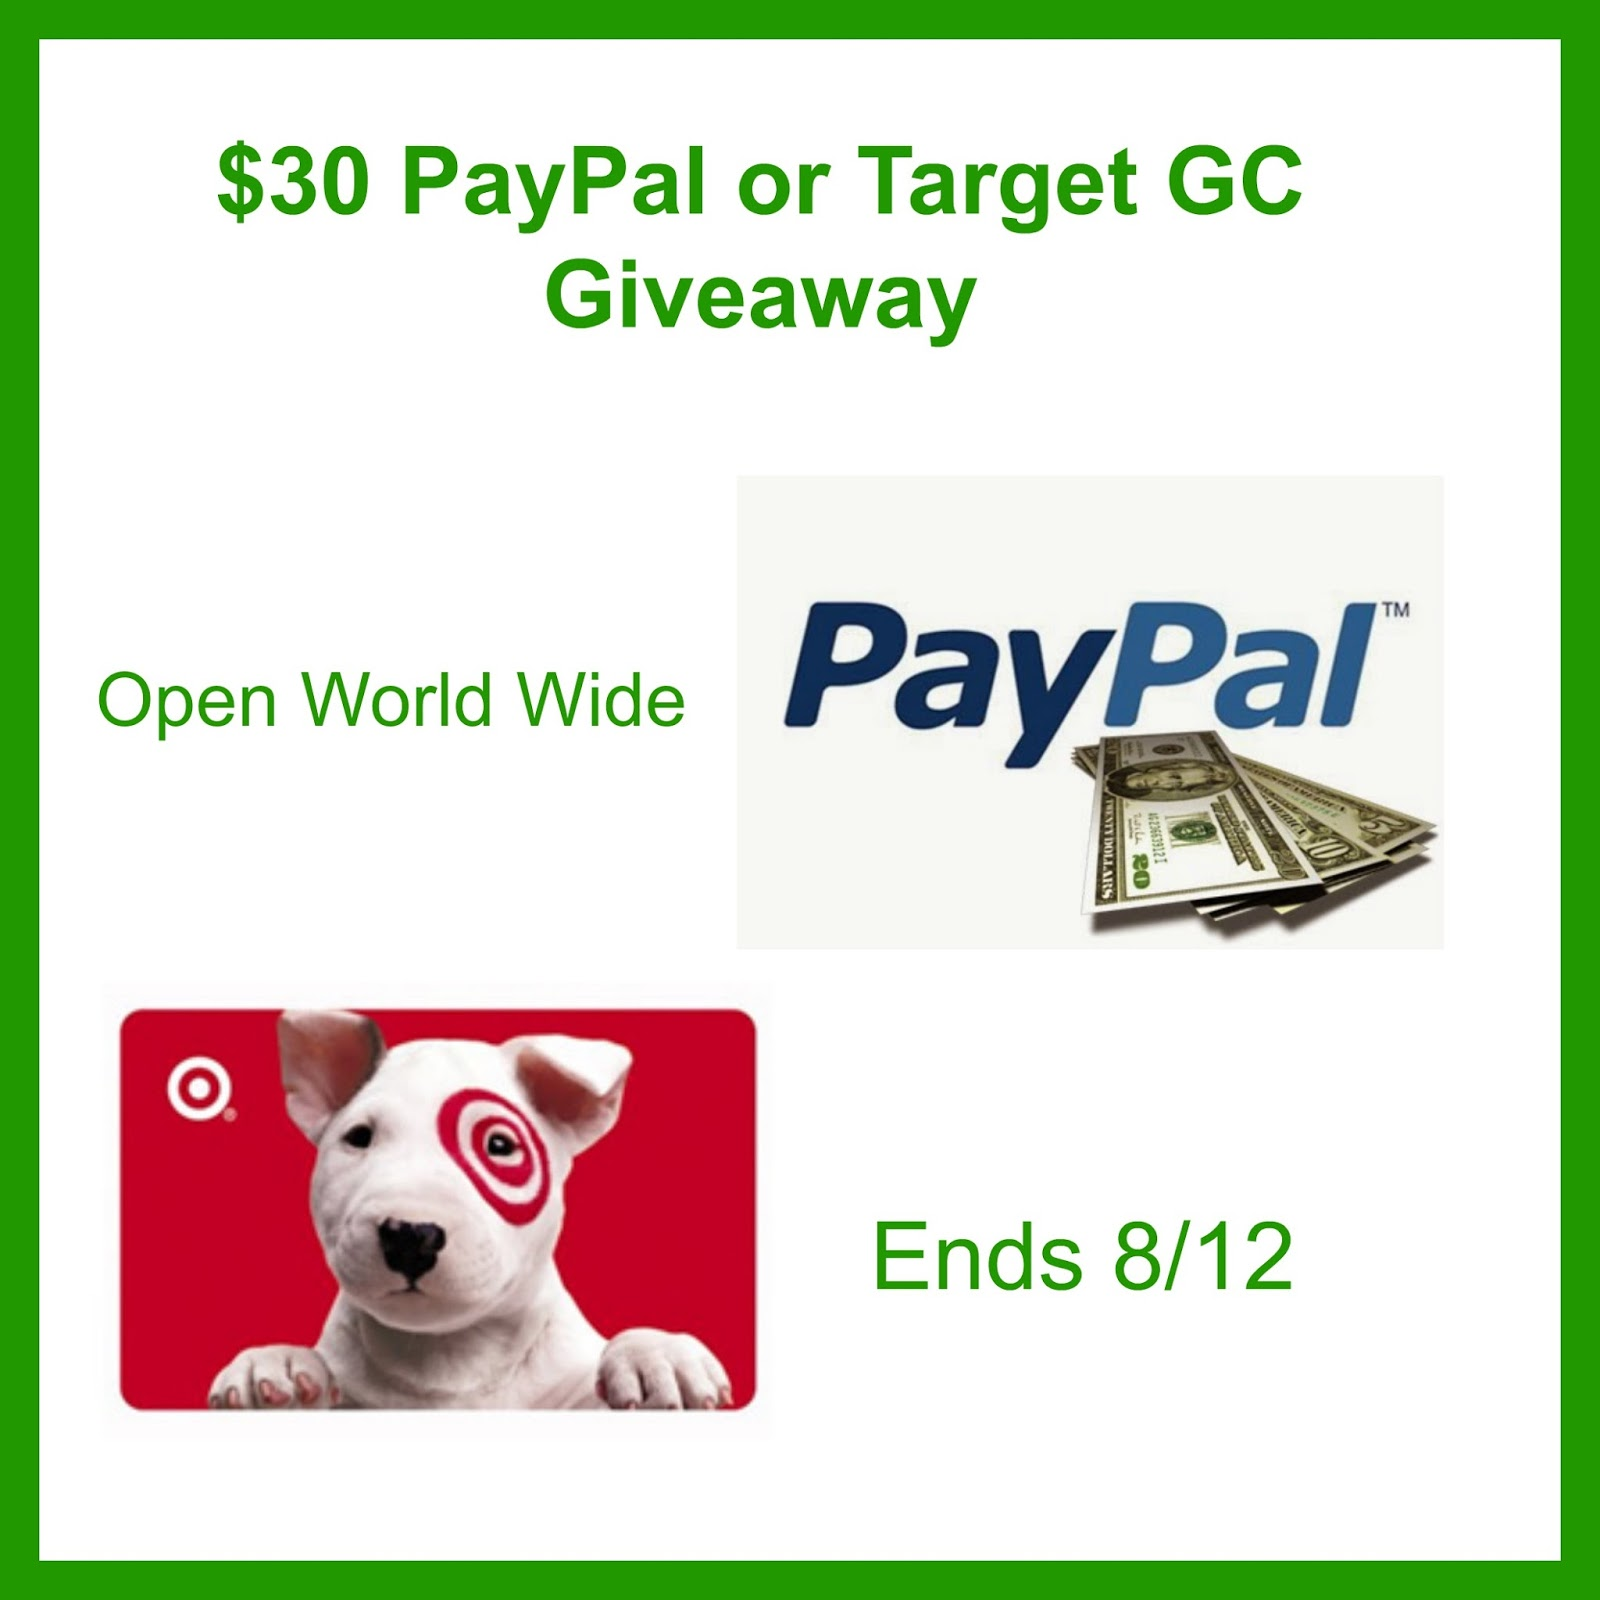 Top Notch Material: $30 PayPal or Target Gift Card Giveaway